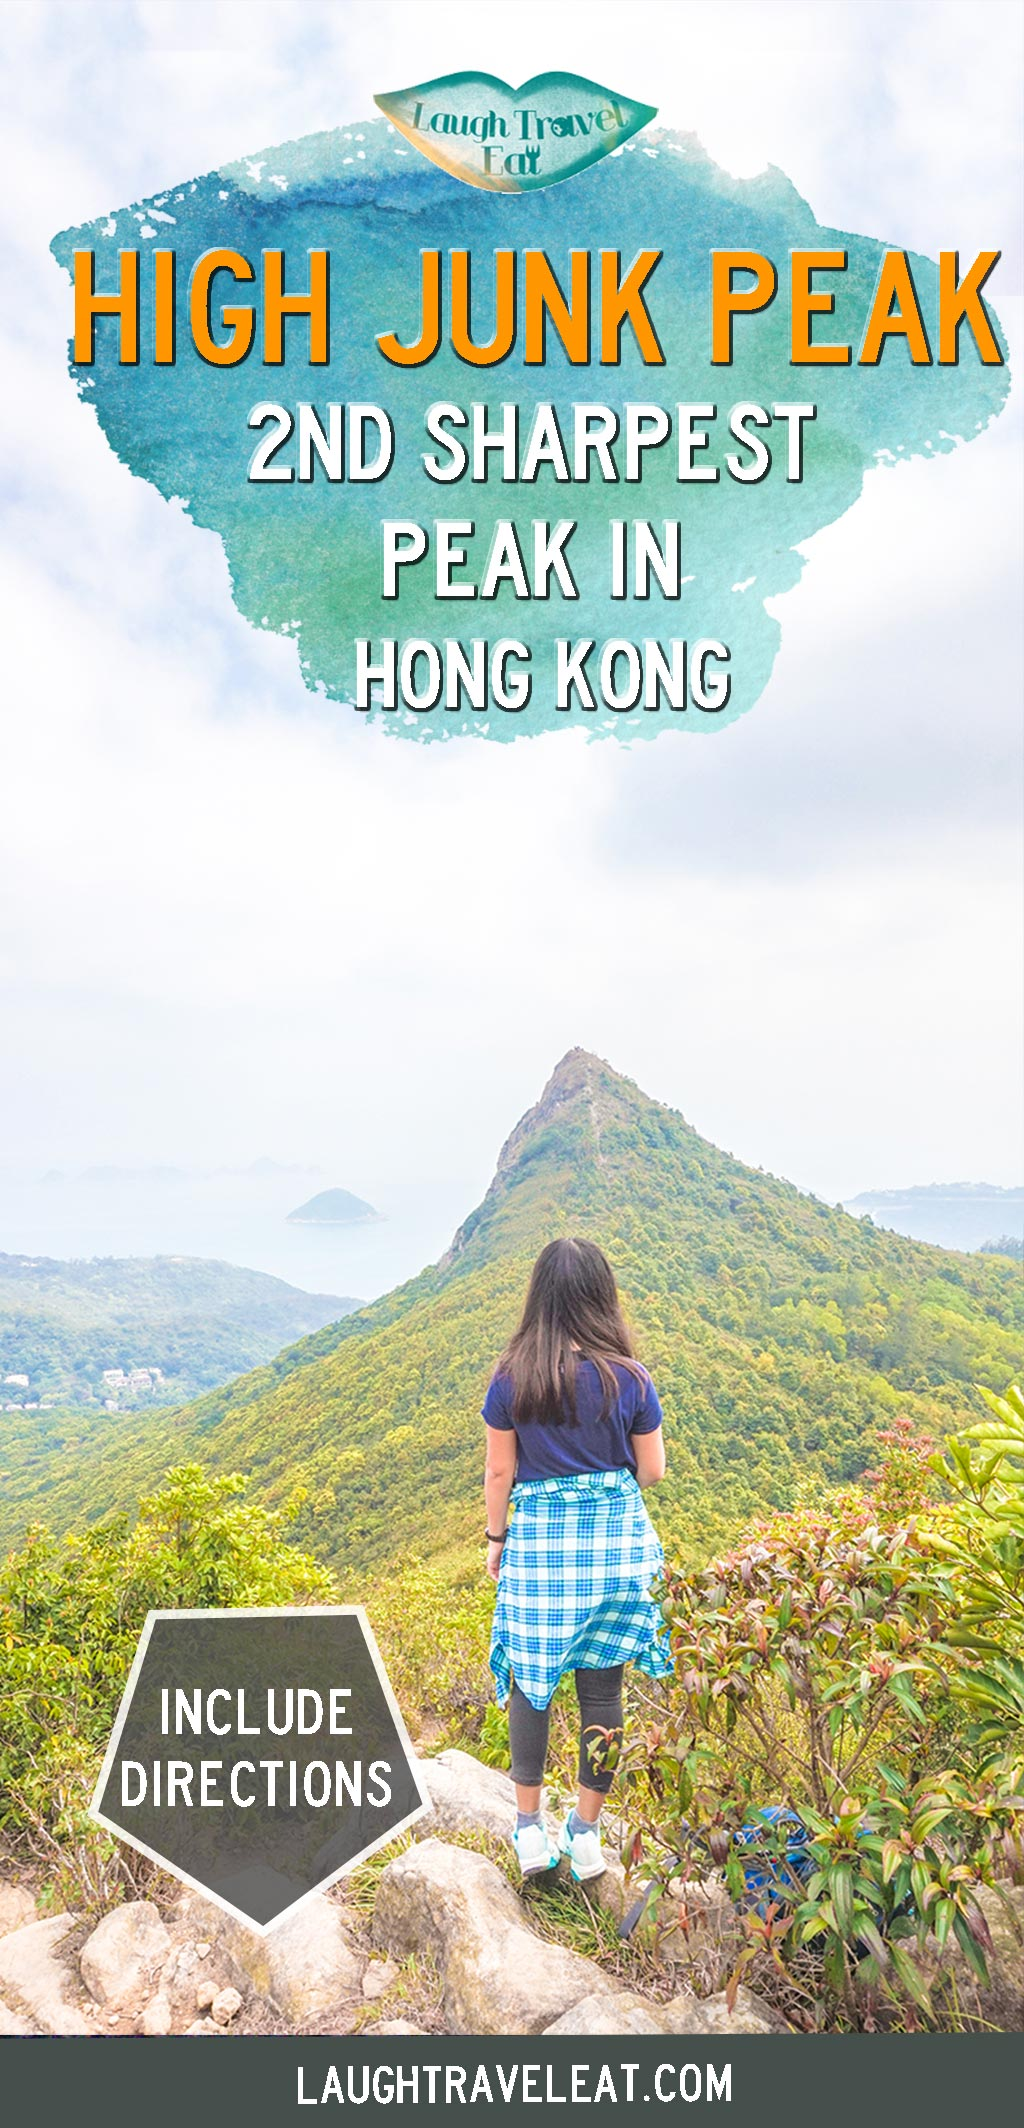 High Junk Peak is part of the three sharpest peak in Hong Kong with a clear view of Clear Water Bay. Here is how to hike it: #hongkong #hiking #nature